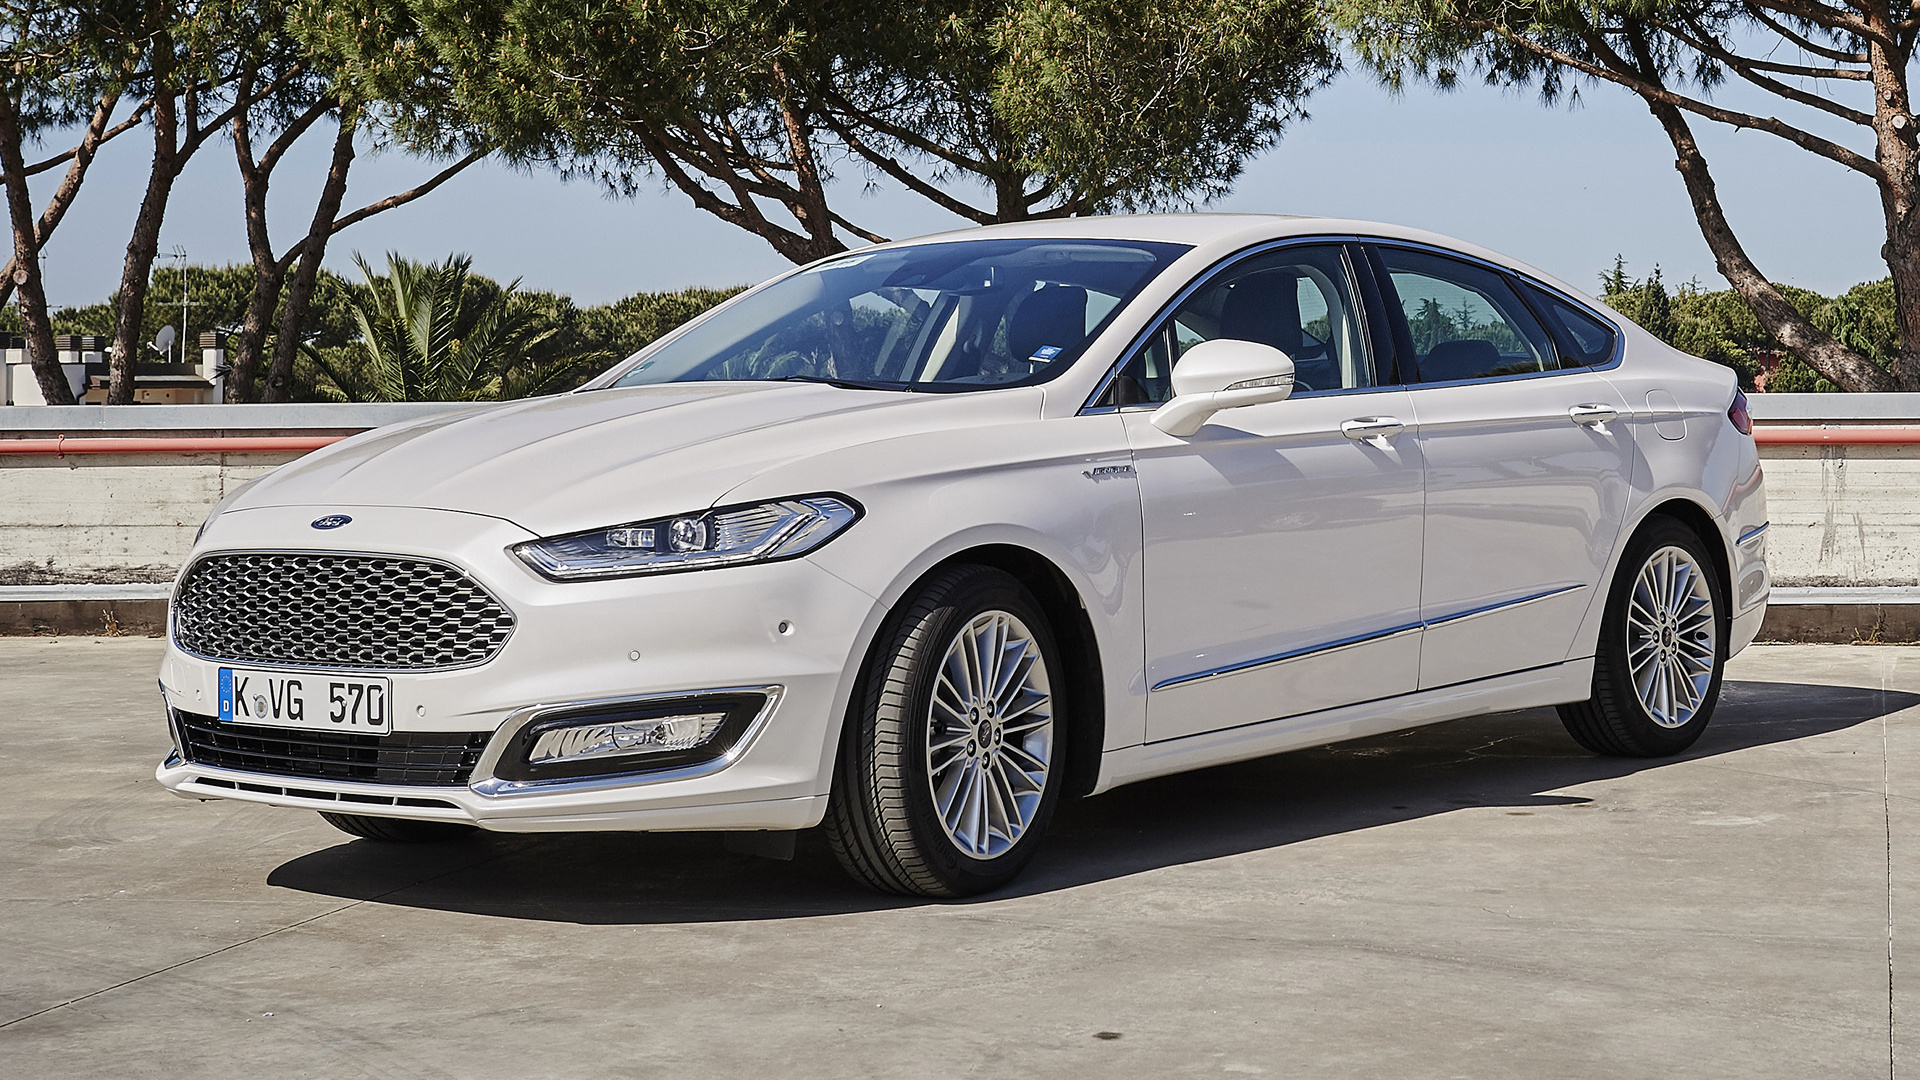 2015 ford vignale mondeo sedan wallpapers and hd images. Black Bedroom Furniture Sets. Home Design Ideas